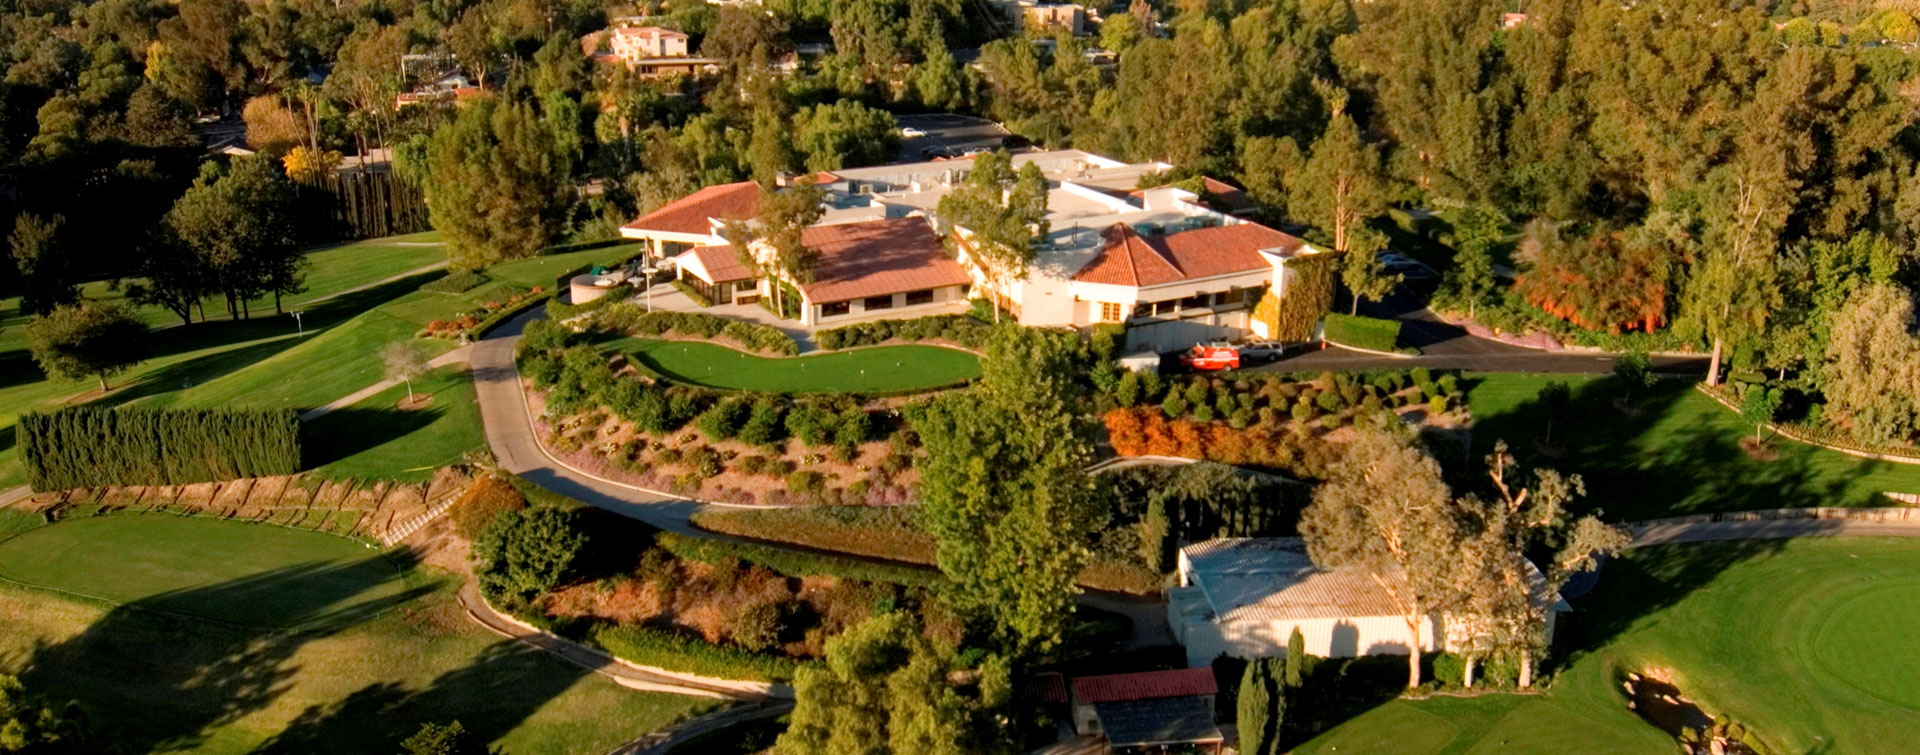 Woodland Hills Golf Course & Country Club in Los Angeles, CA